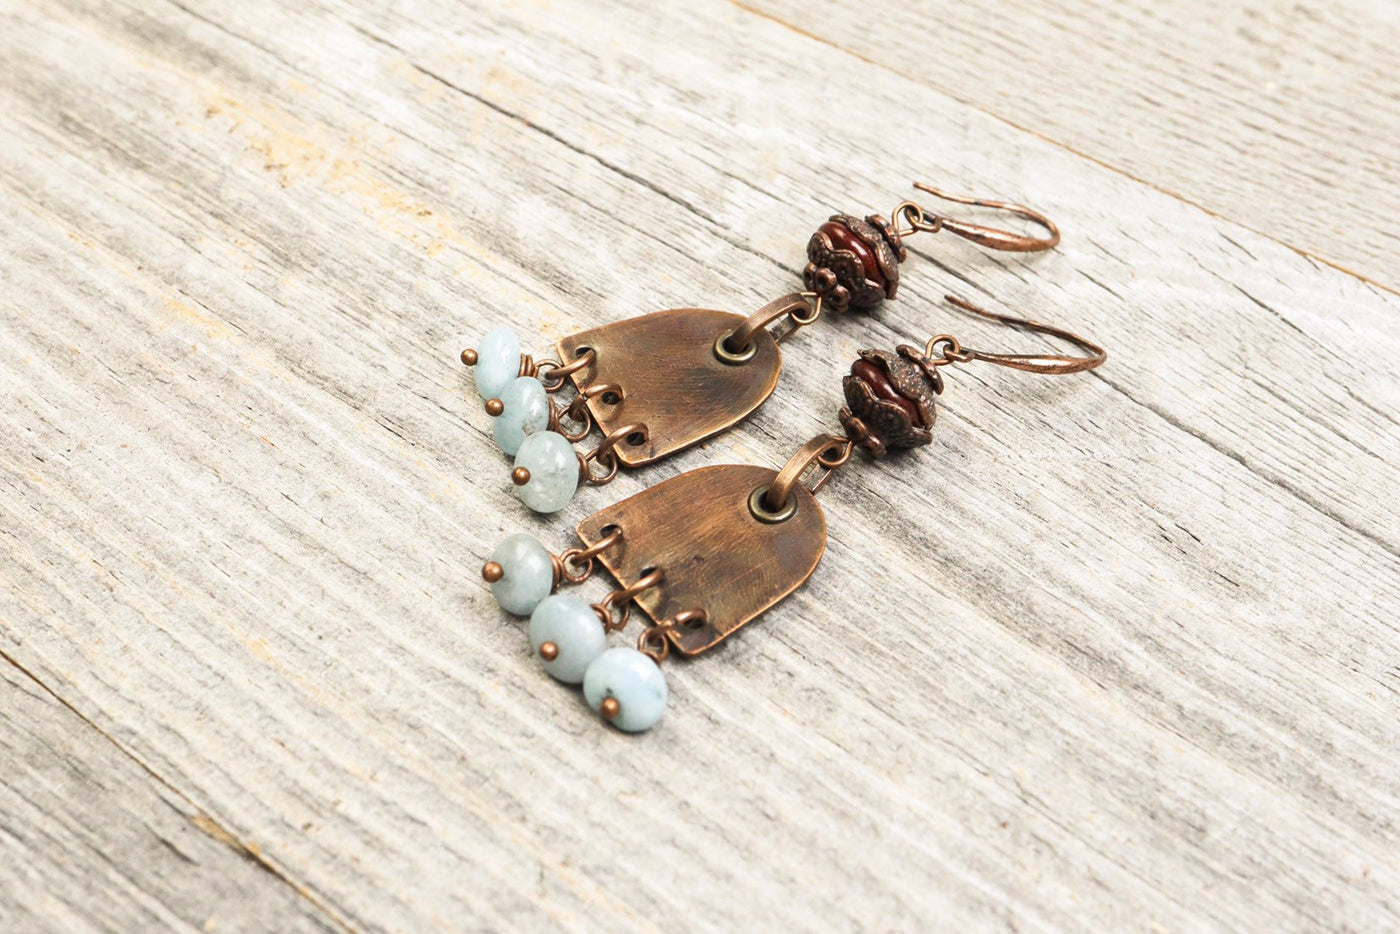 Blue Jade Copper Earrings, Distressed Earthy Metal Stone Dangle Antique Boho Gypsy Hippie Unique Statement Bohemian Rustic Handmade Jewelry